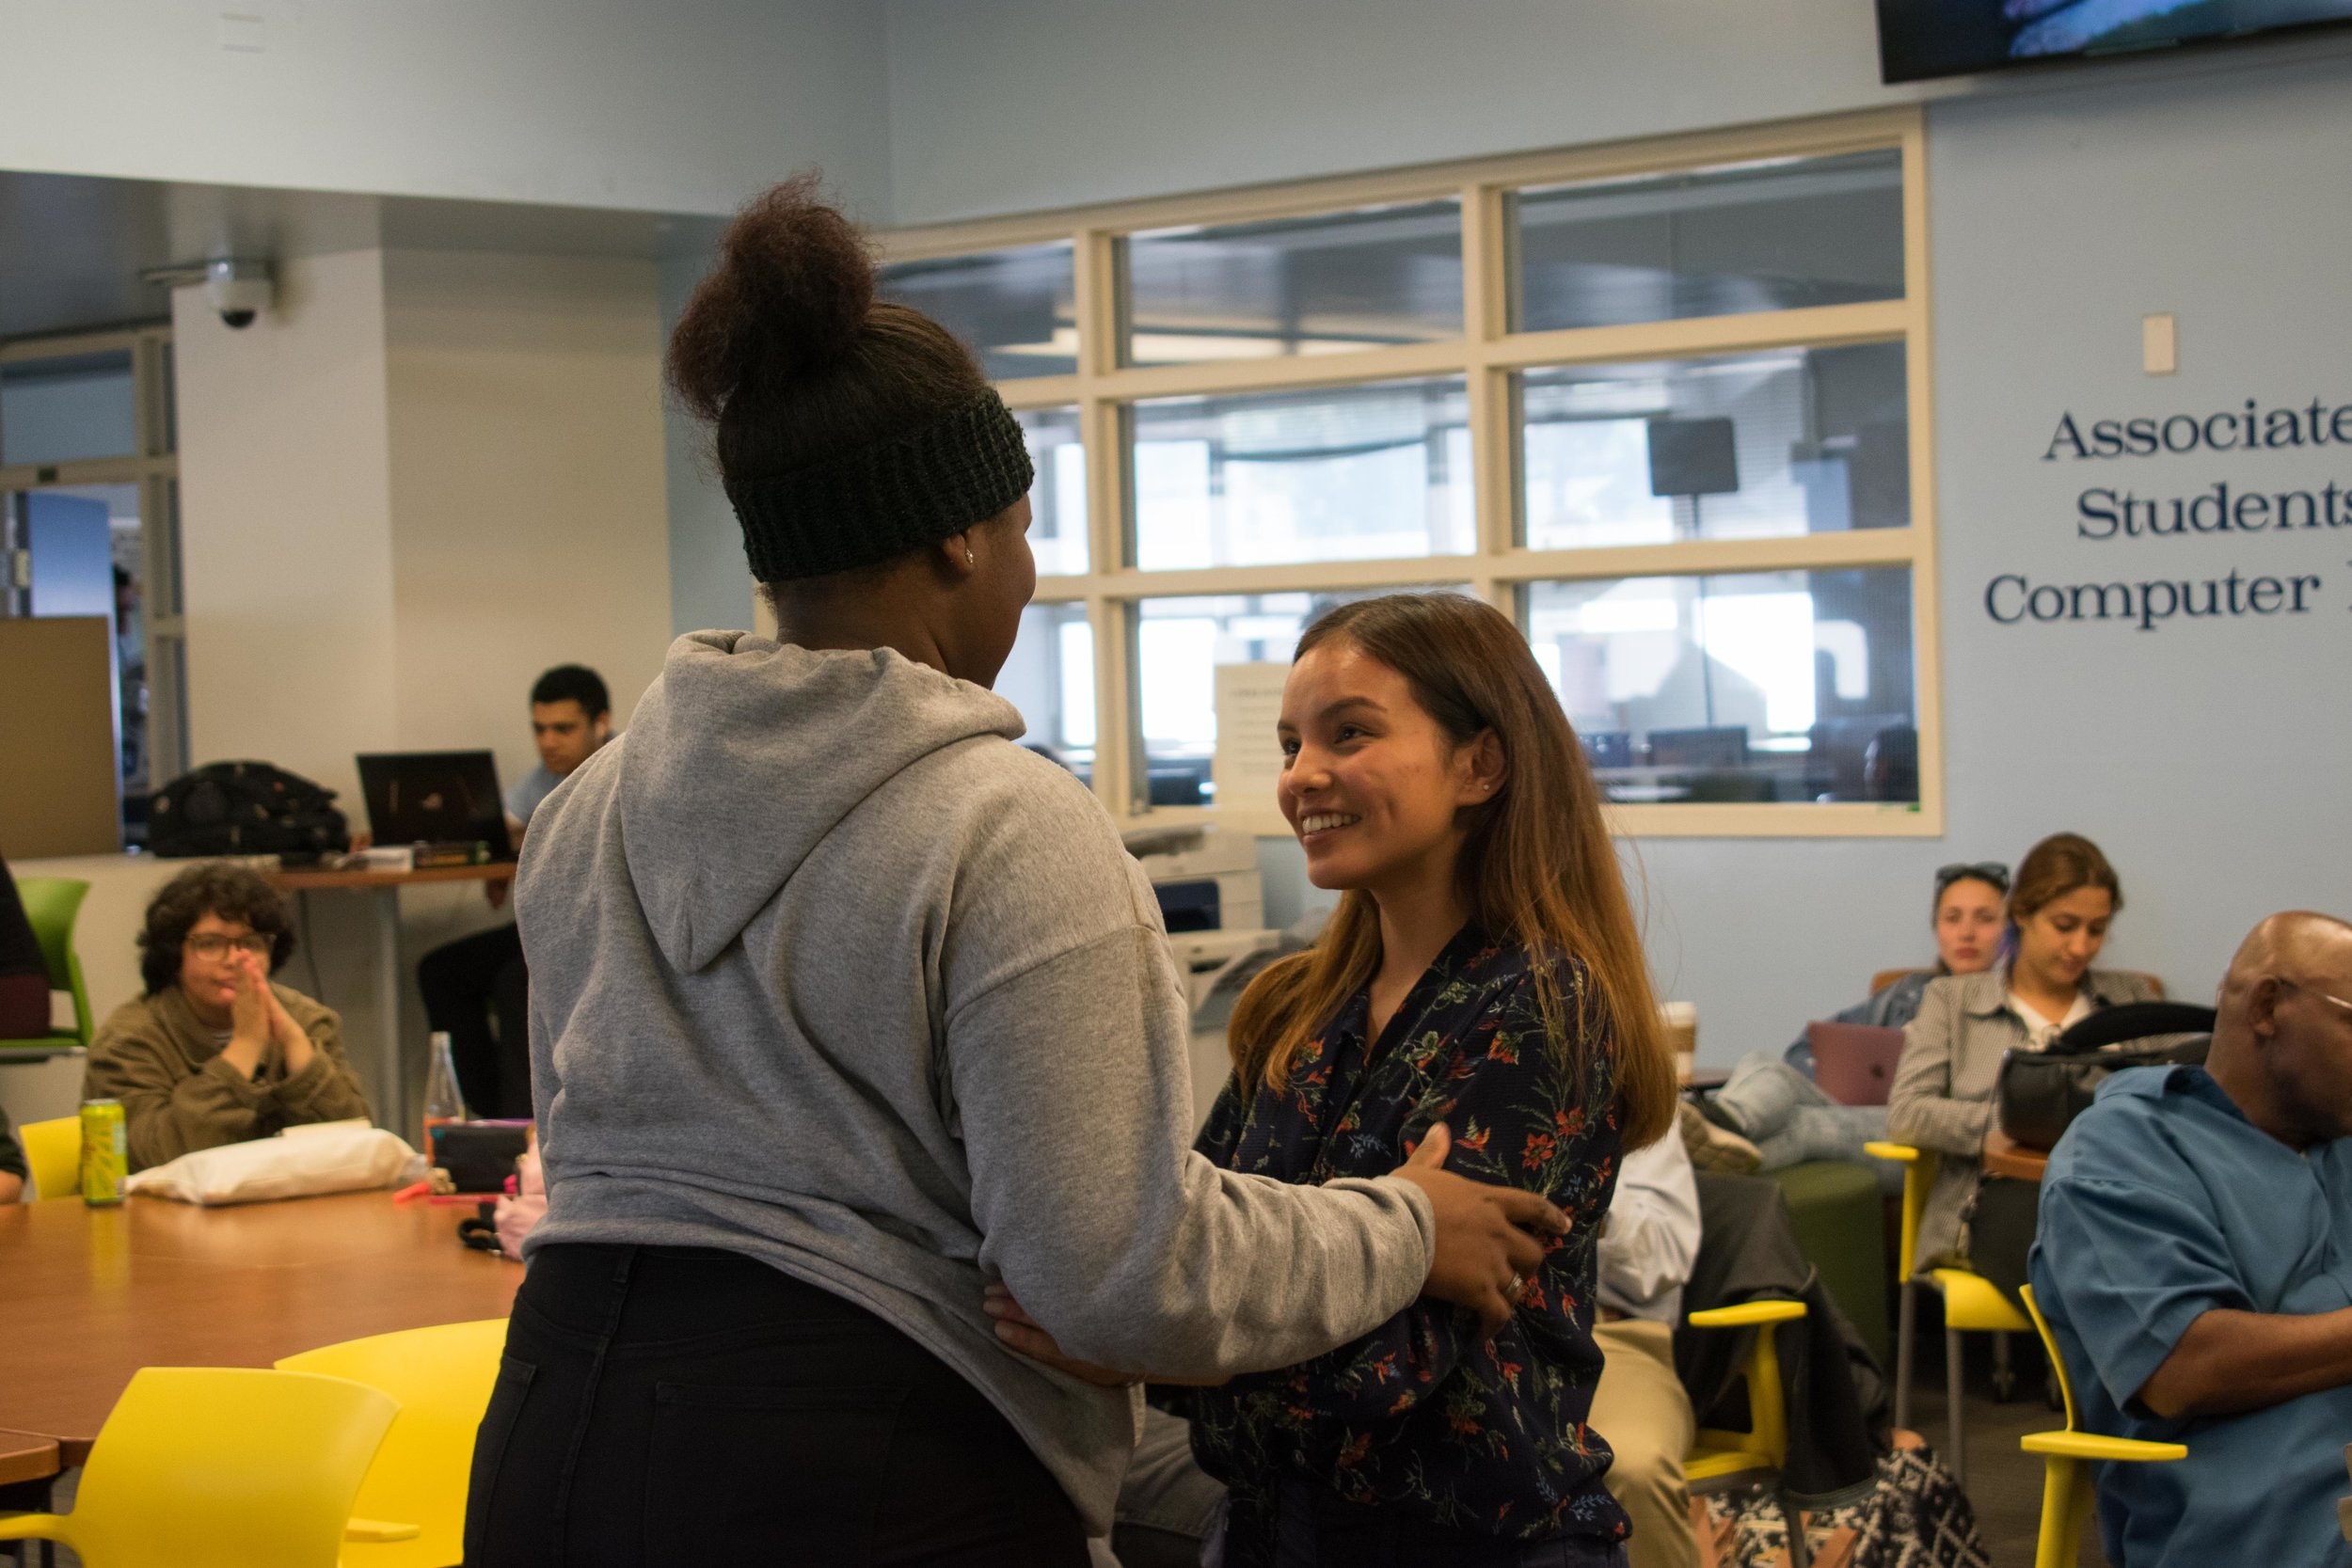 Two candidates for Director of Activites, Jazzmin Sardin hugs interim director Saori Gurung after Gurung is announced to be the primary director at Santa Monica College in Santa Monica, California. (Photo by Ethan Lauren)